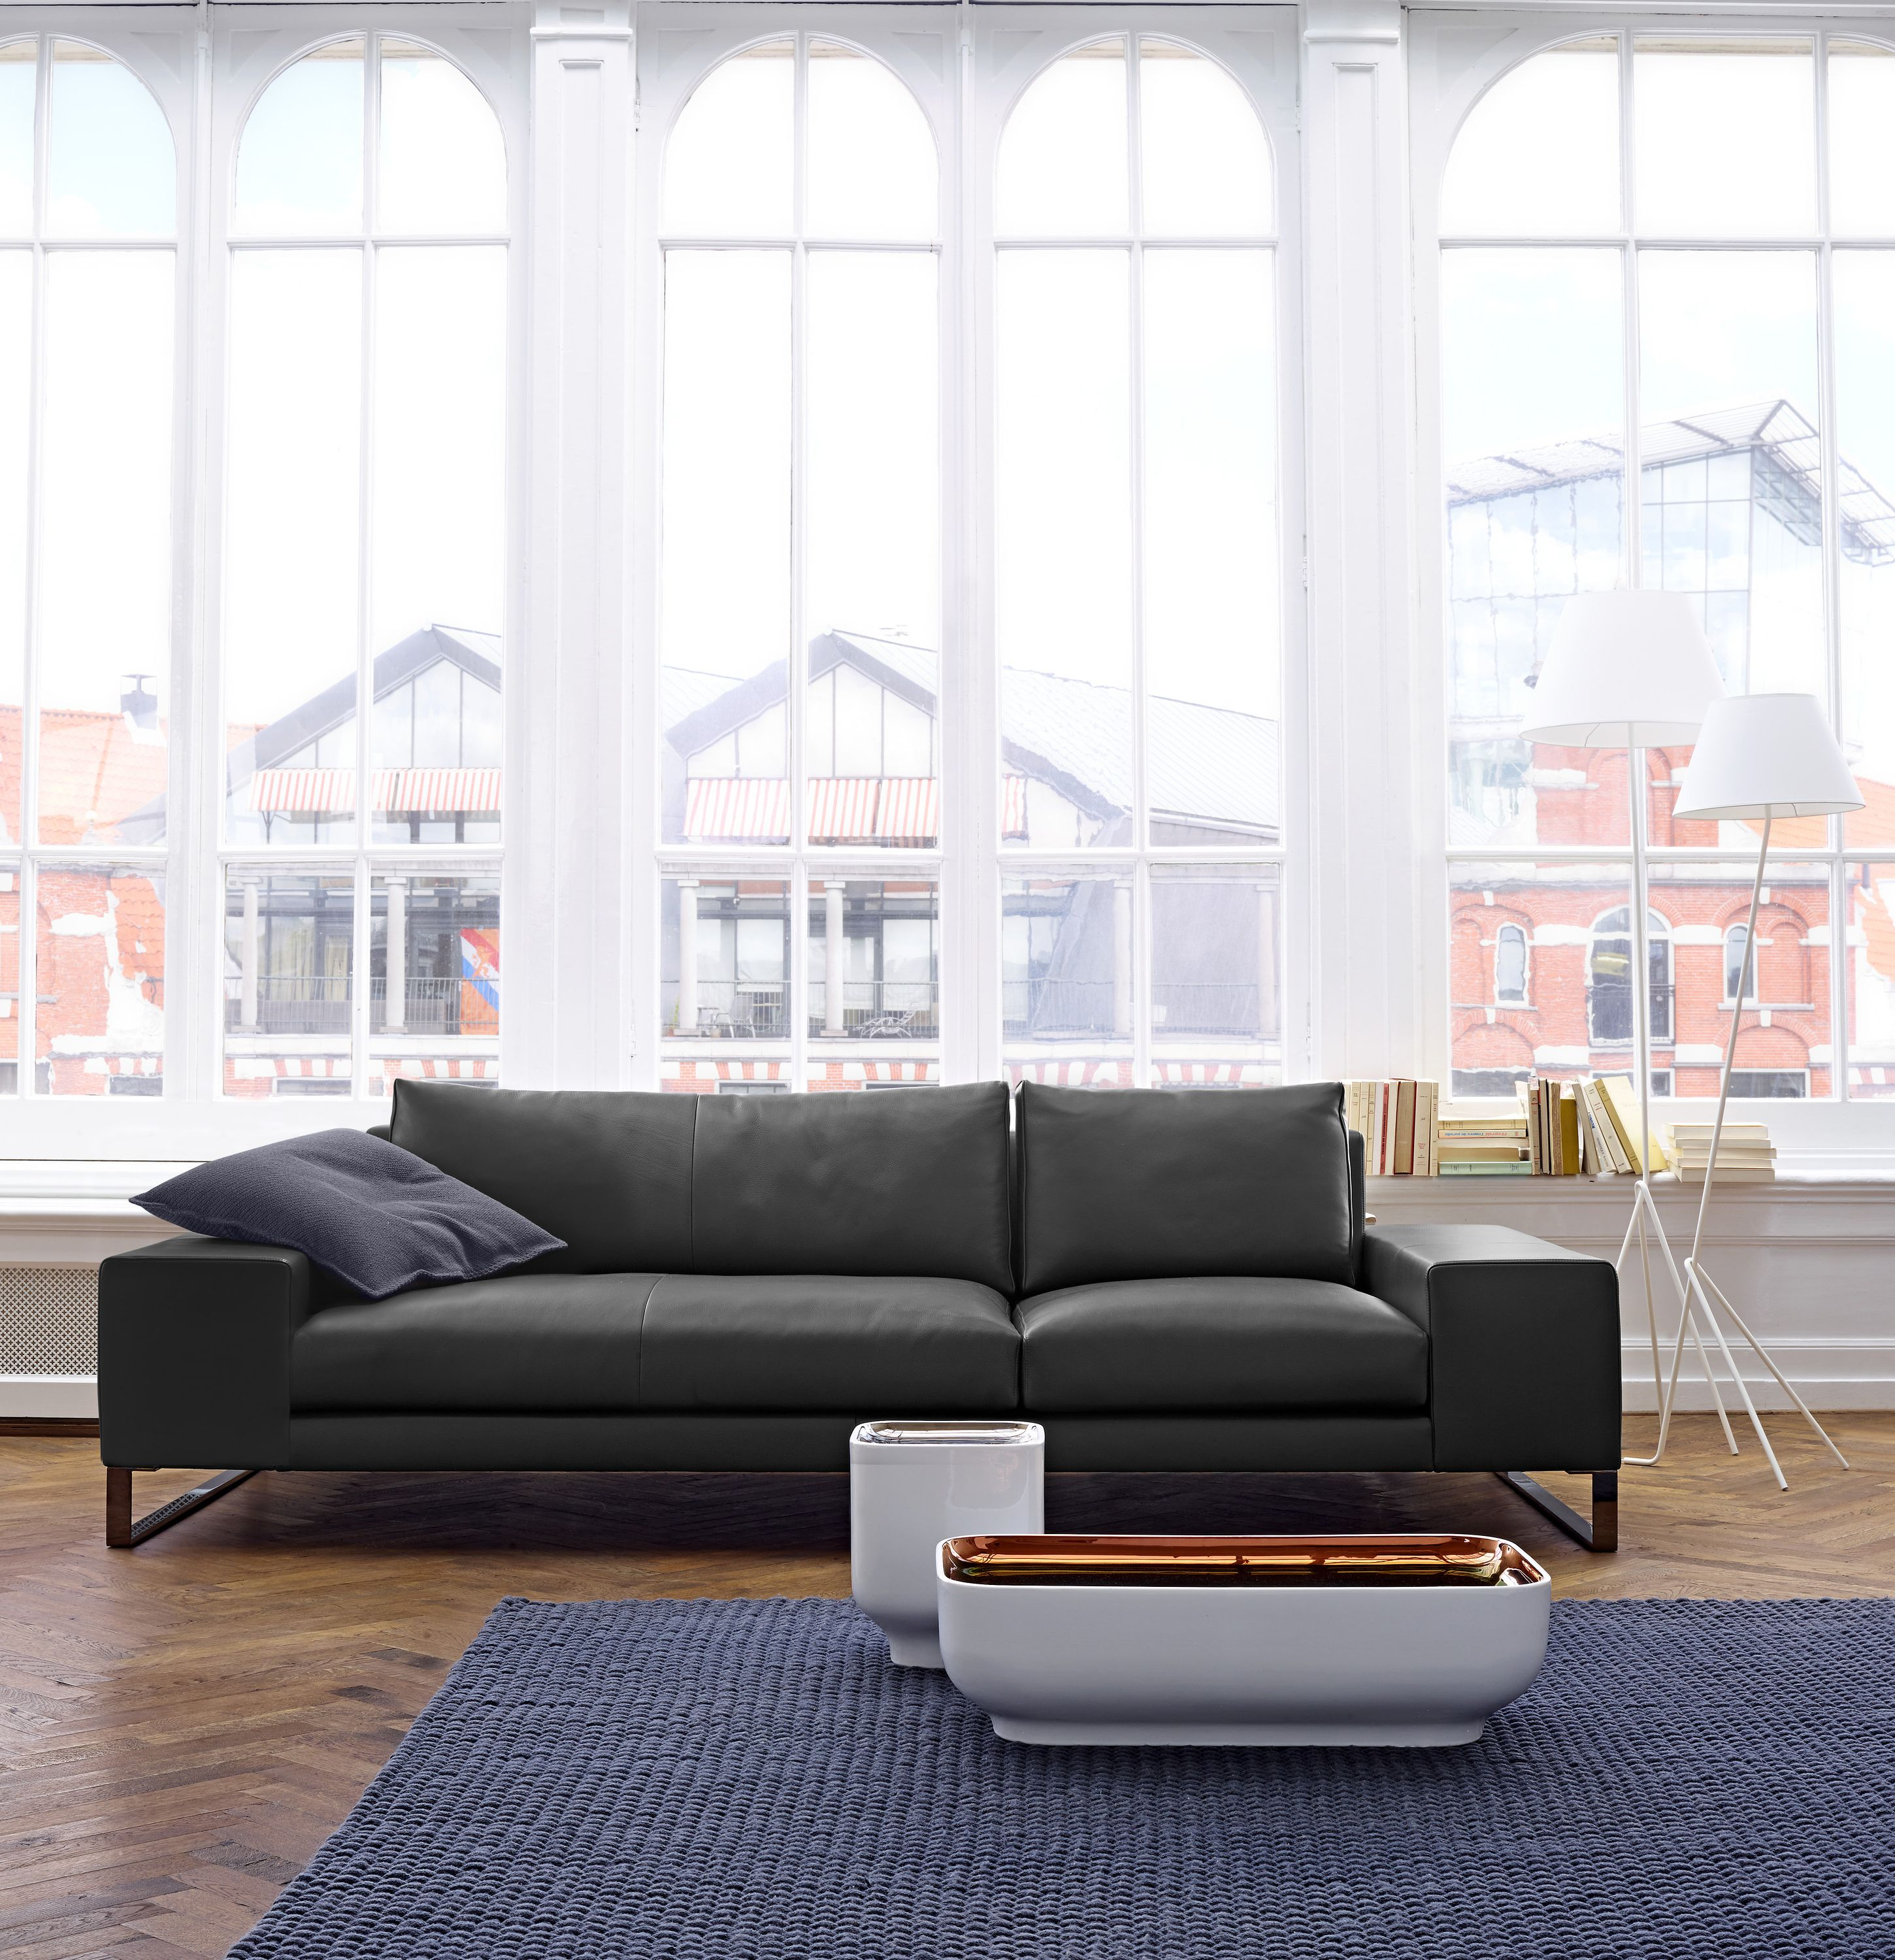 Exclusif 2 sofa collection designed by didier gomez for ligne roset available at linea inc modern furniture los angeles